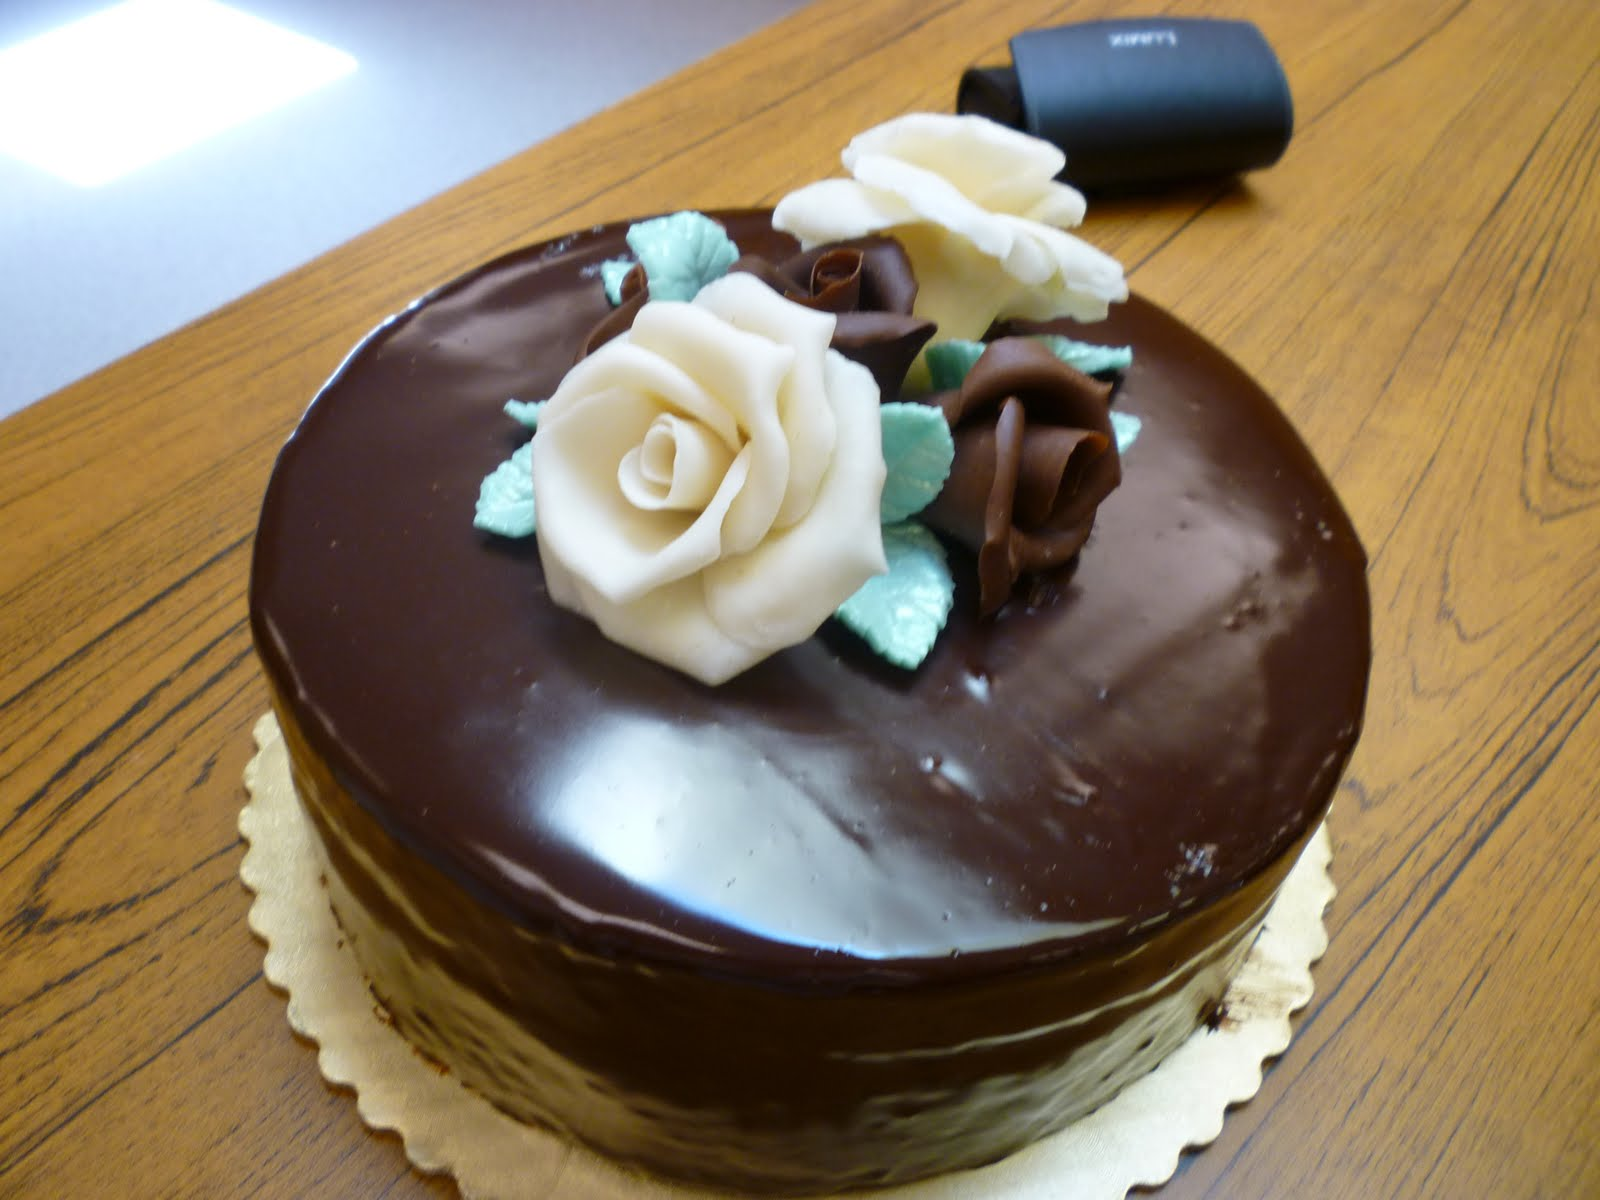 Cake Decorating Ideas Chocolate Cake : Chocolate Cake Decorating Ideas Decorating Ideas